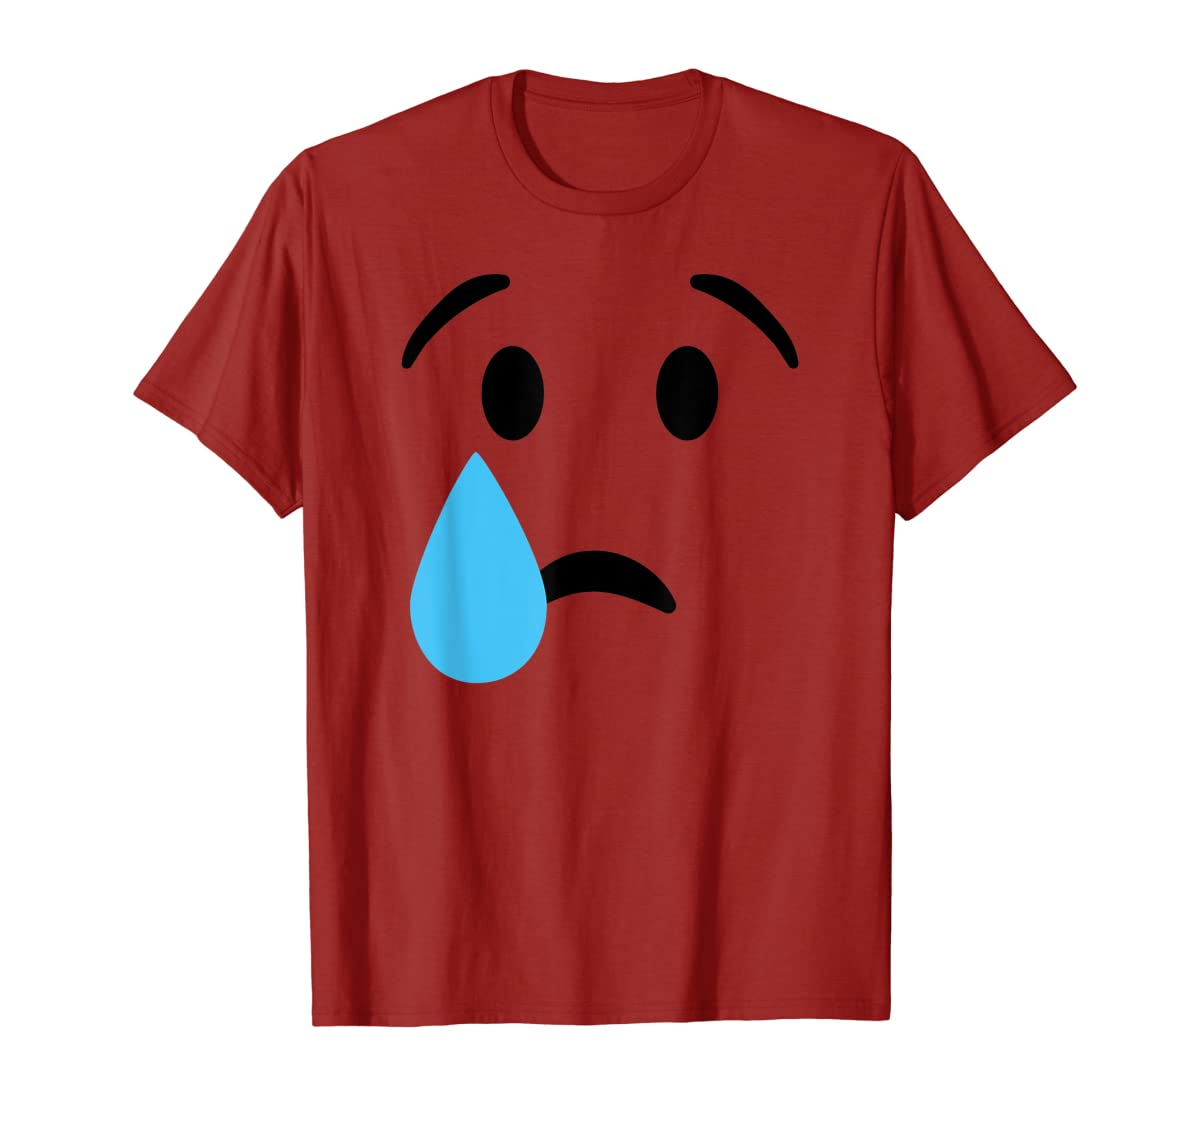 Sad Crying Tear Eyes Face Emojis Emoticon Halloween Costume T-Shirt-Men's T-Shirt-Red